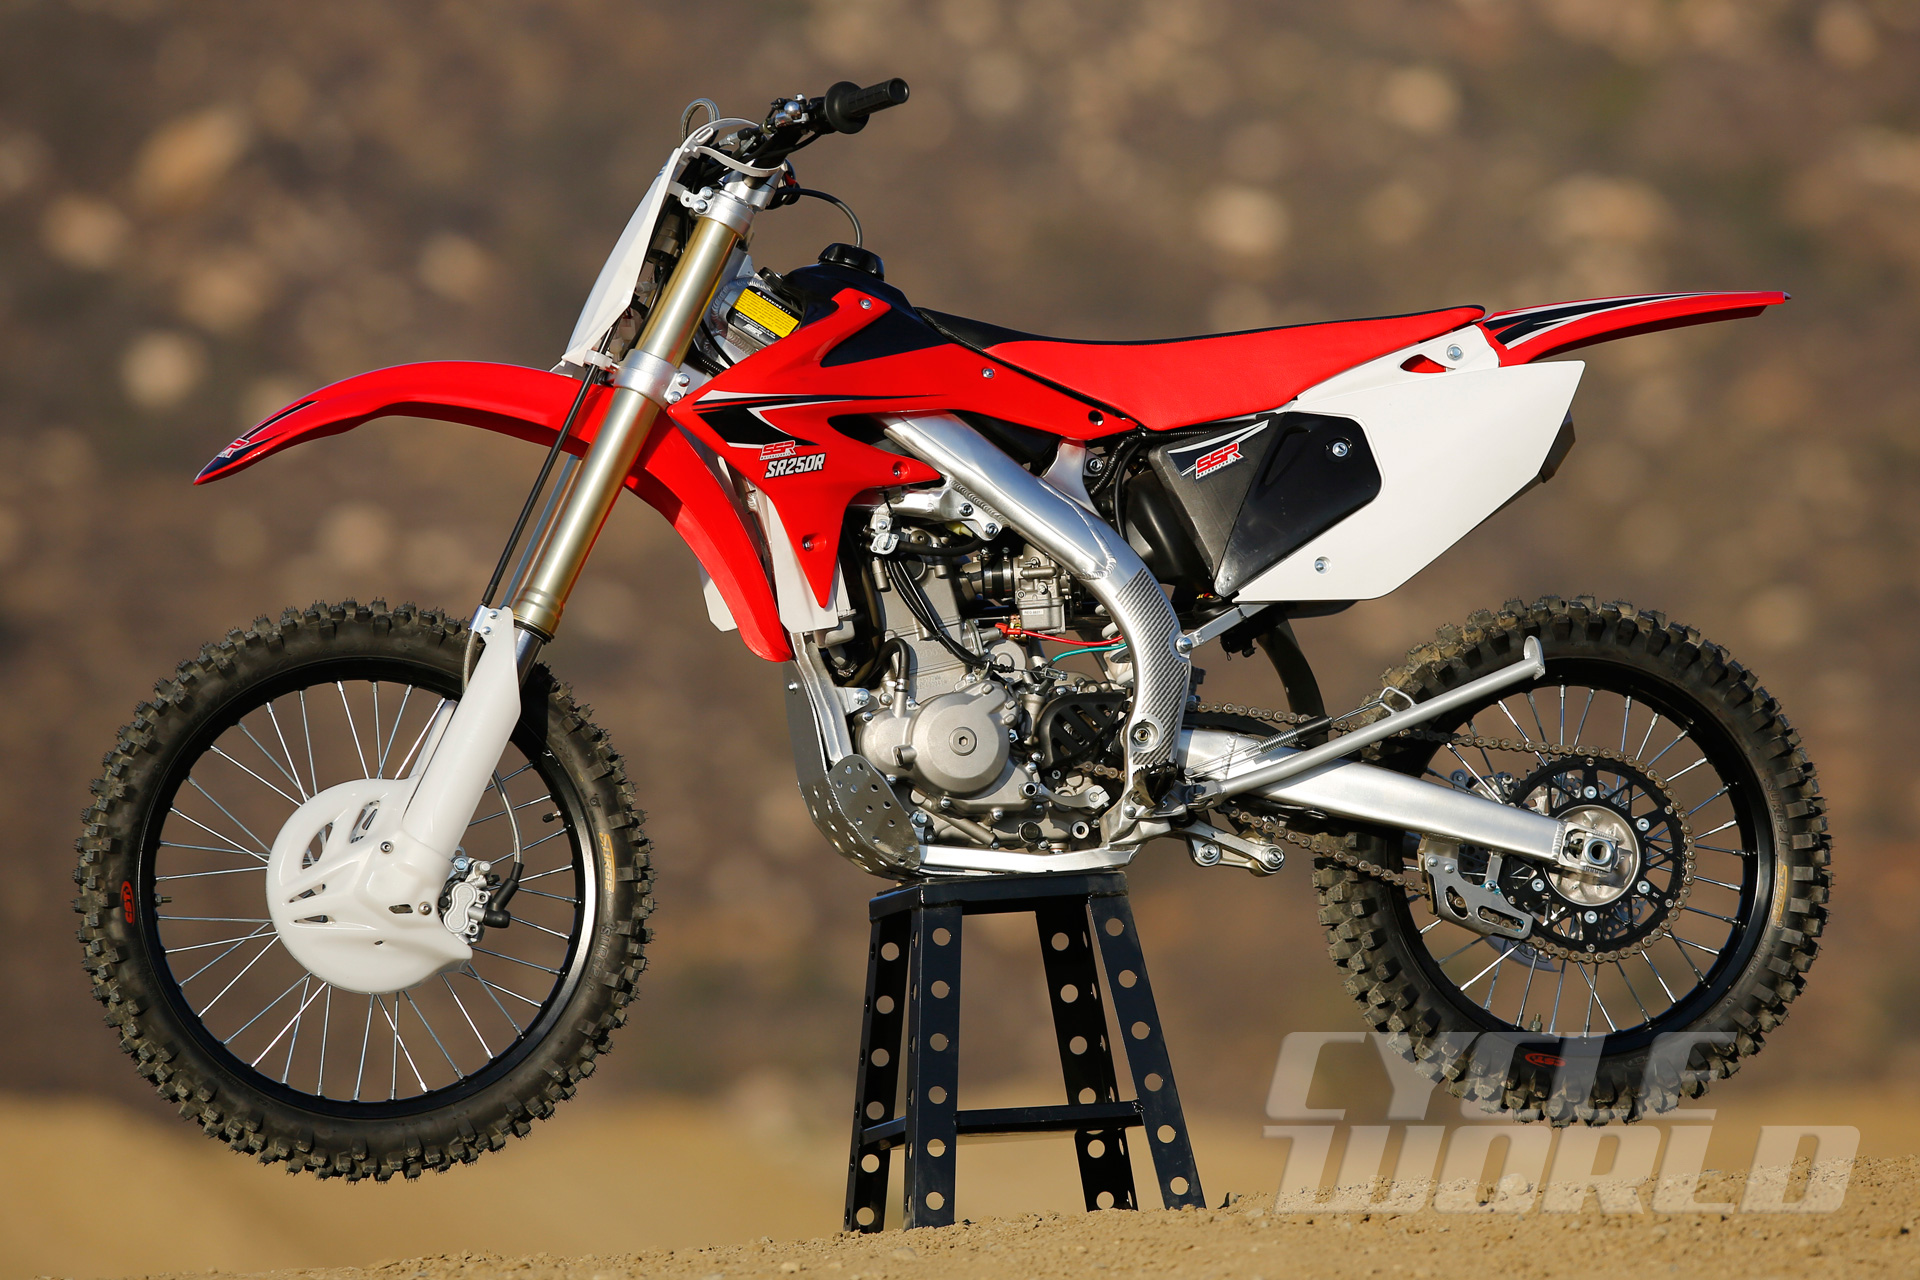 Ssr Sr250s Affordable 250cc 4 Stroke Motocross Bike